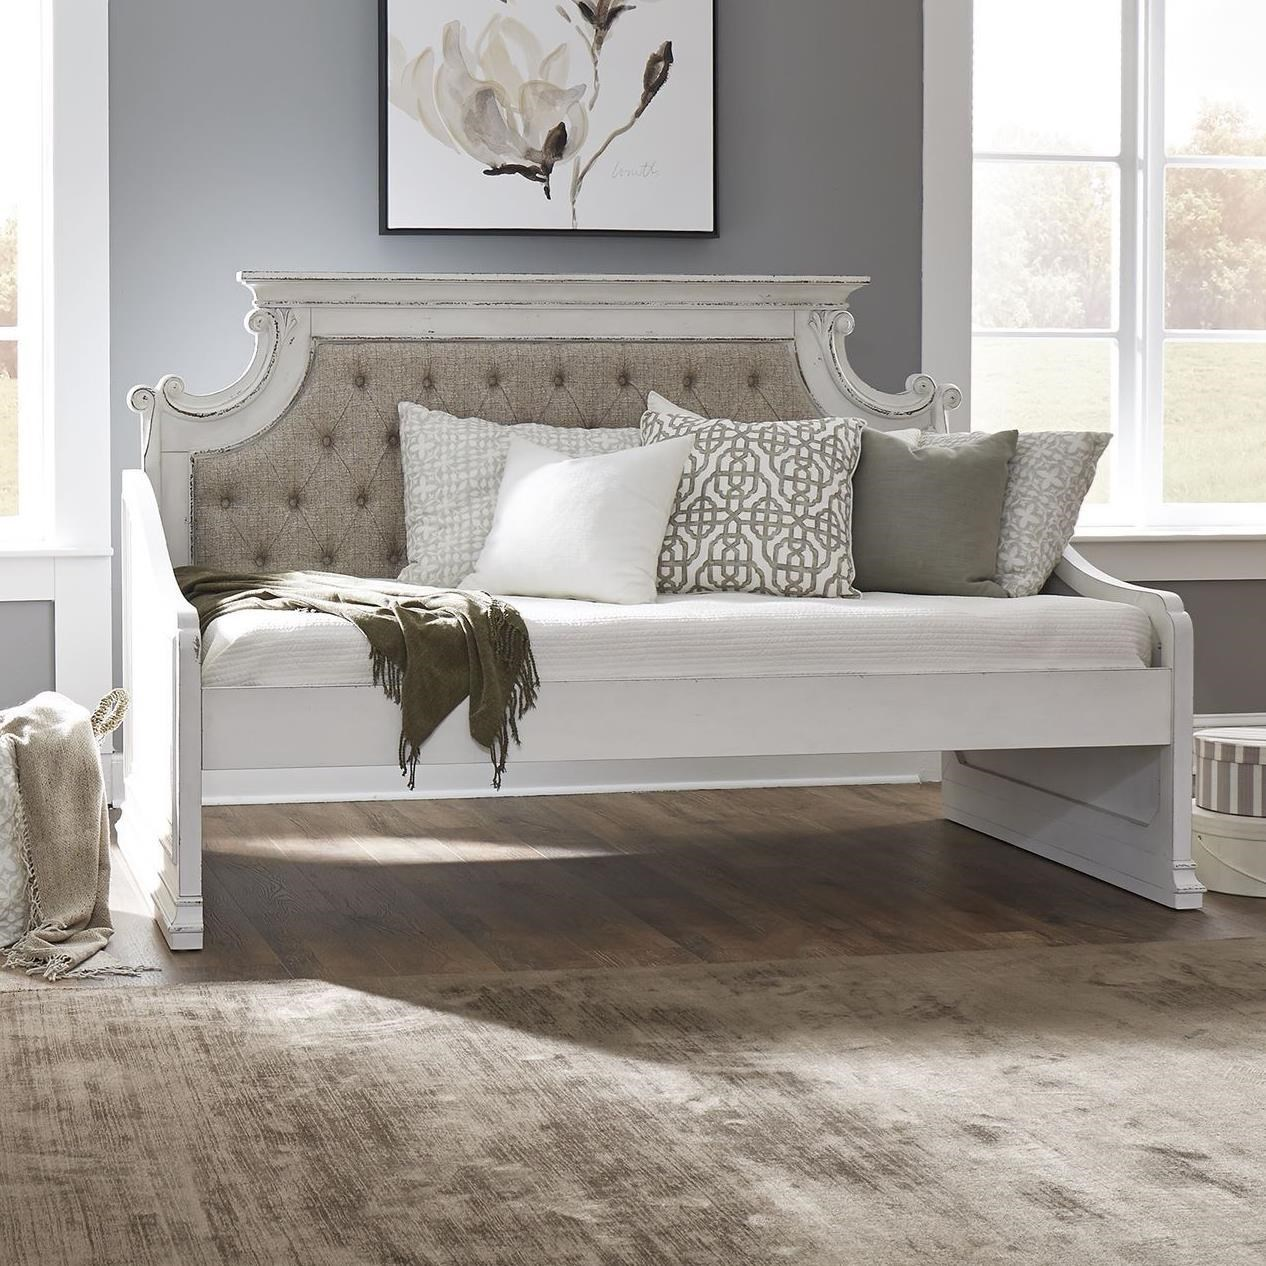 Twin Daybed with Tufted Upholstered Back